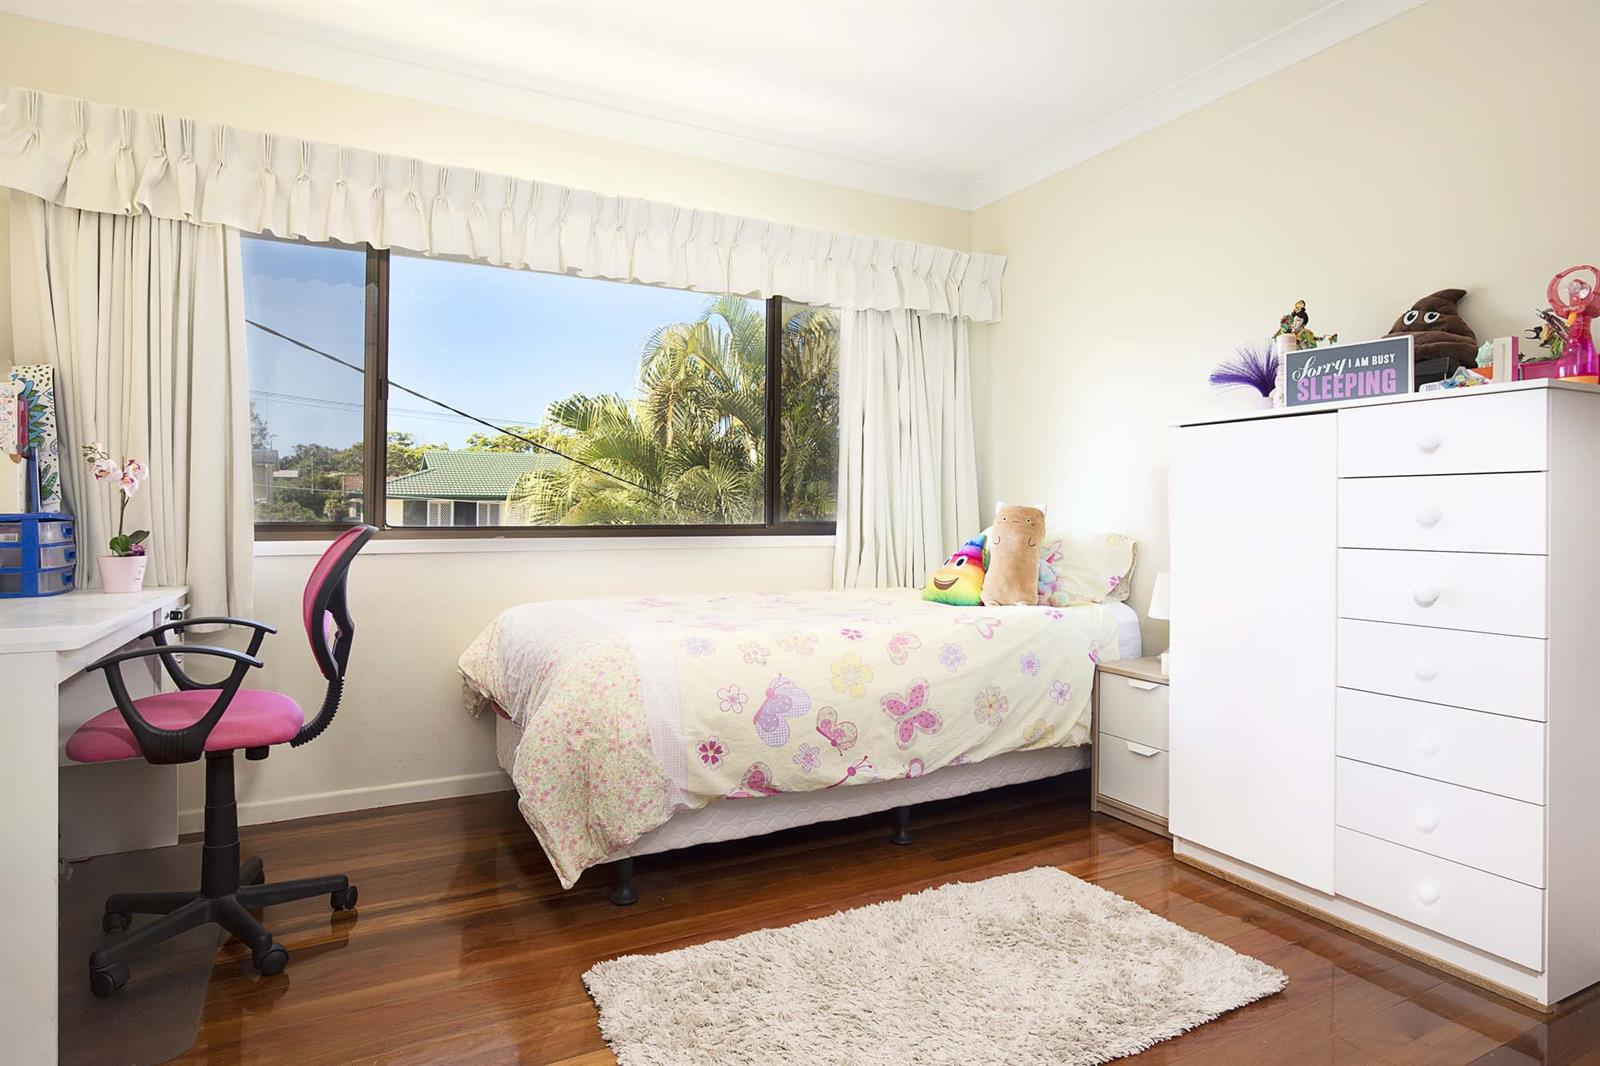 20 Gilmour St CHERMSIDE WEST QLD 4032 Image 9